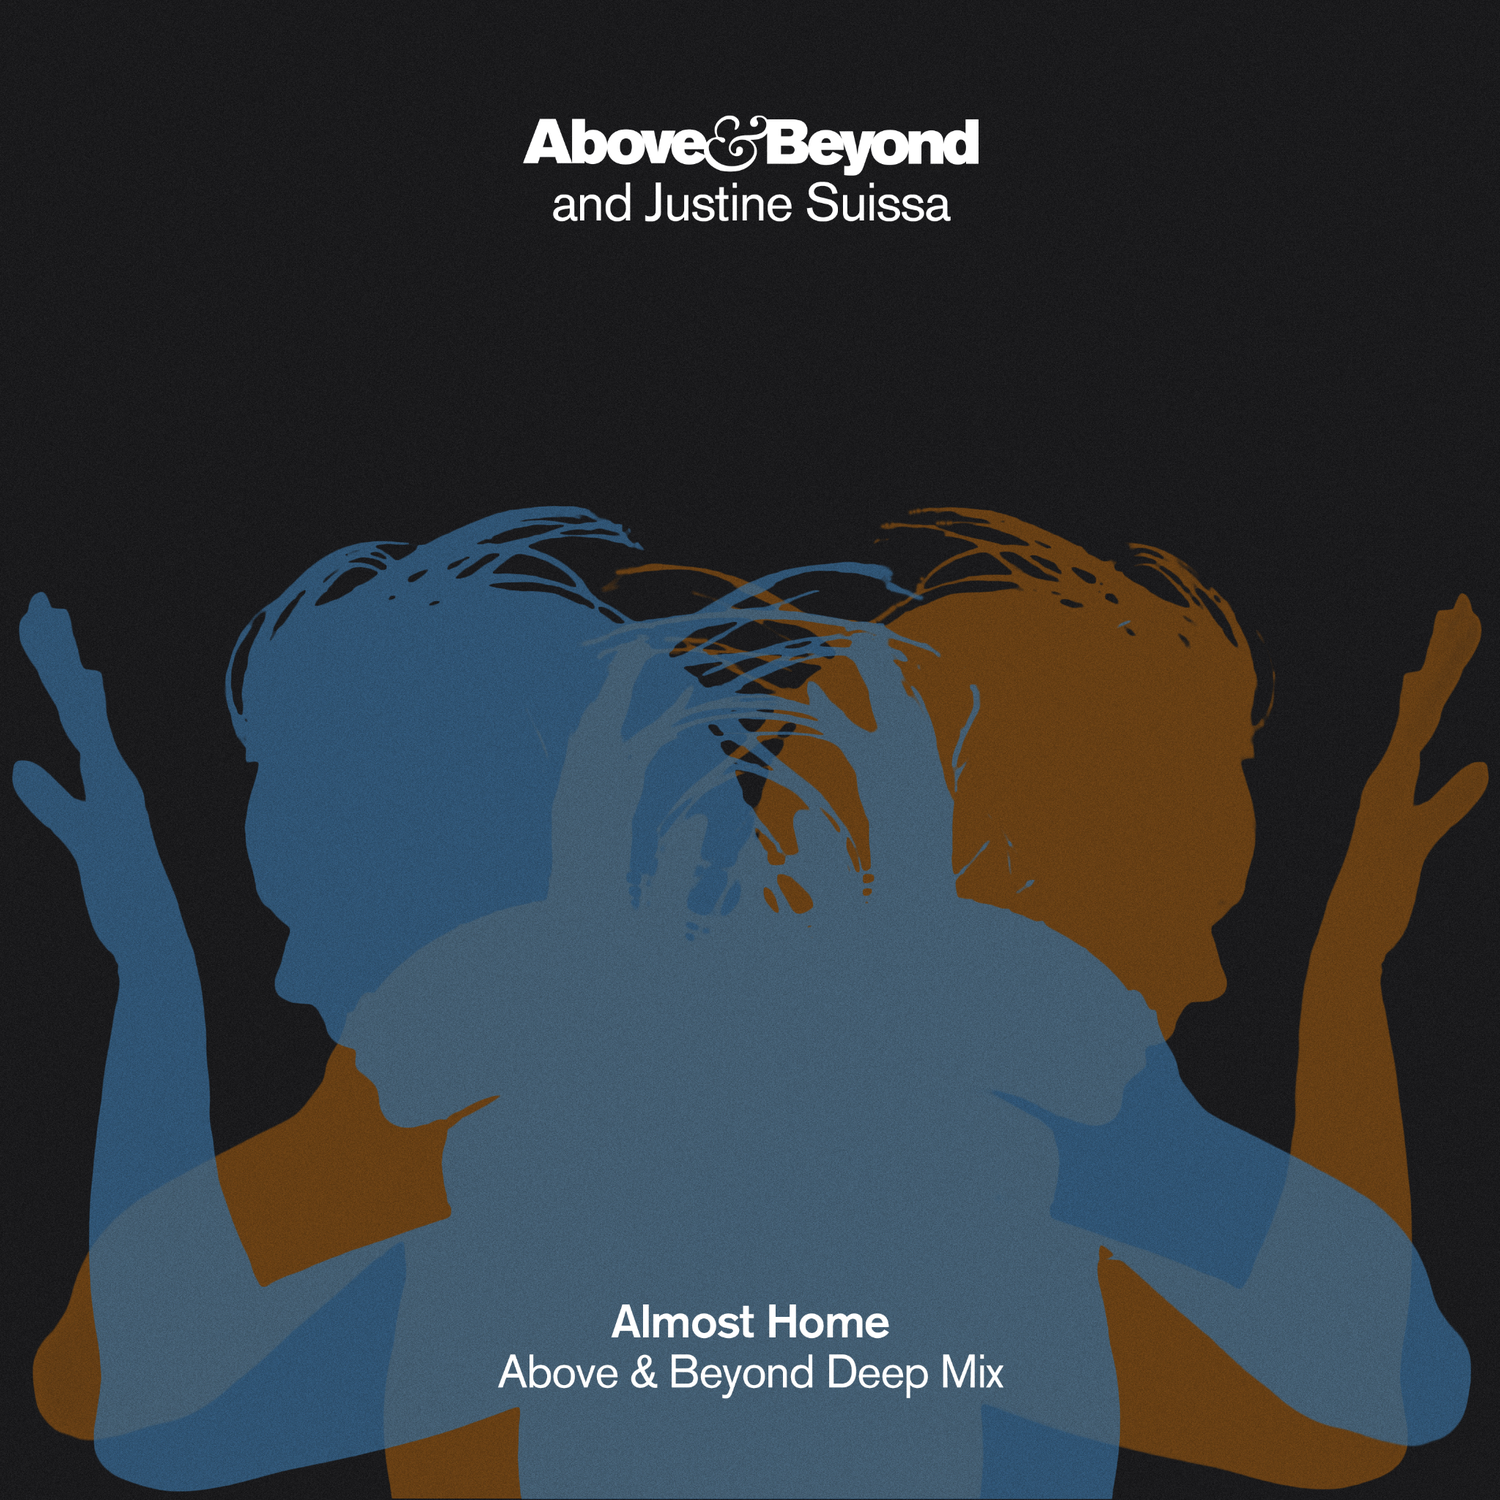 Above & Beyond and Justine Suissa